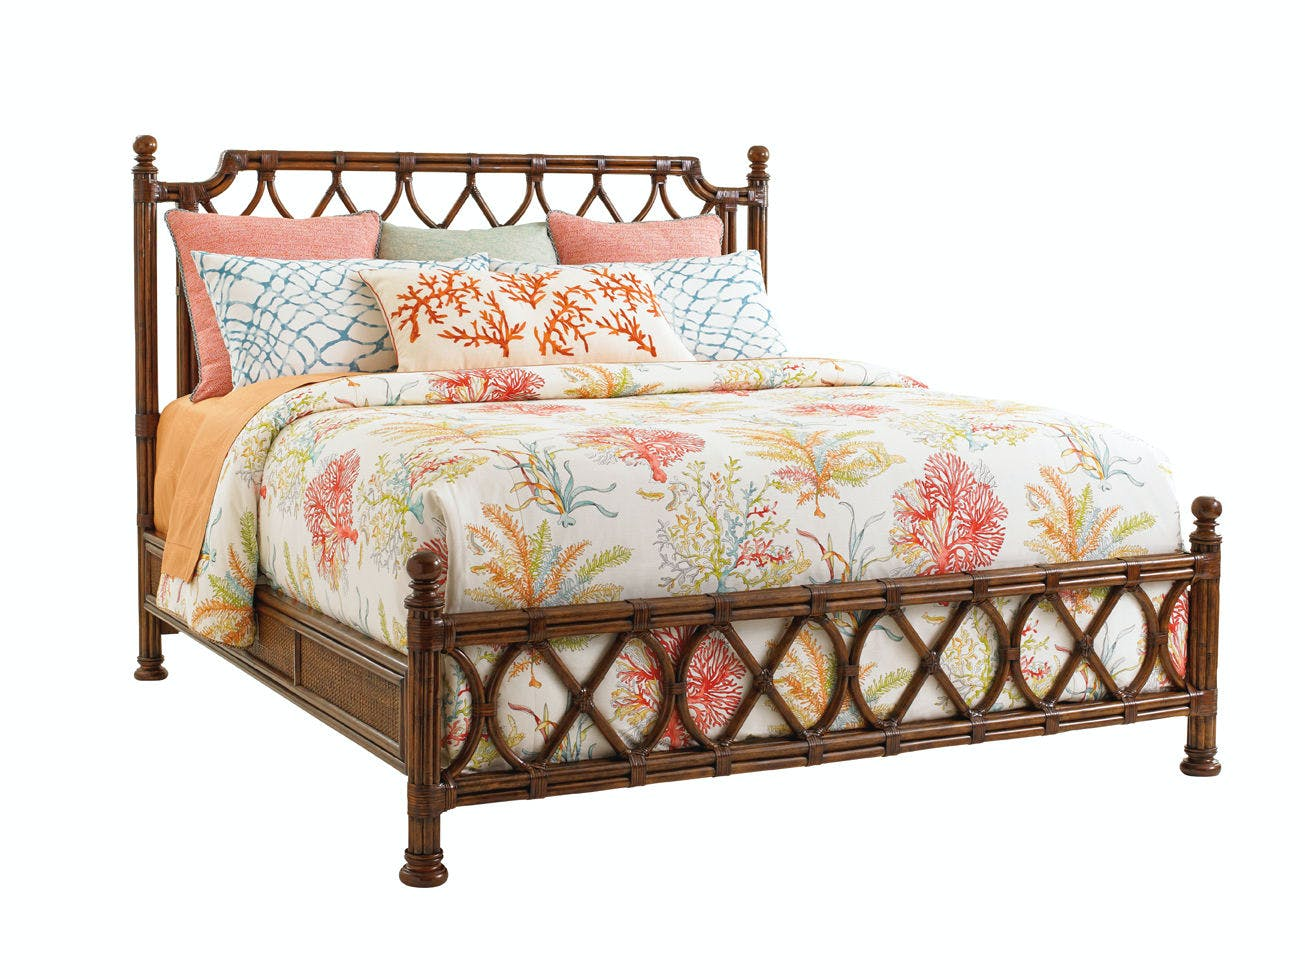 Tommy Bahama Home Bedroom Island Breeze Rattan Bed 6 6 King 593 134c Cottswood Interiors